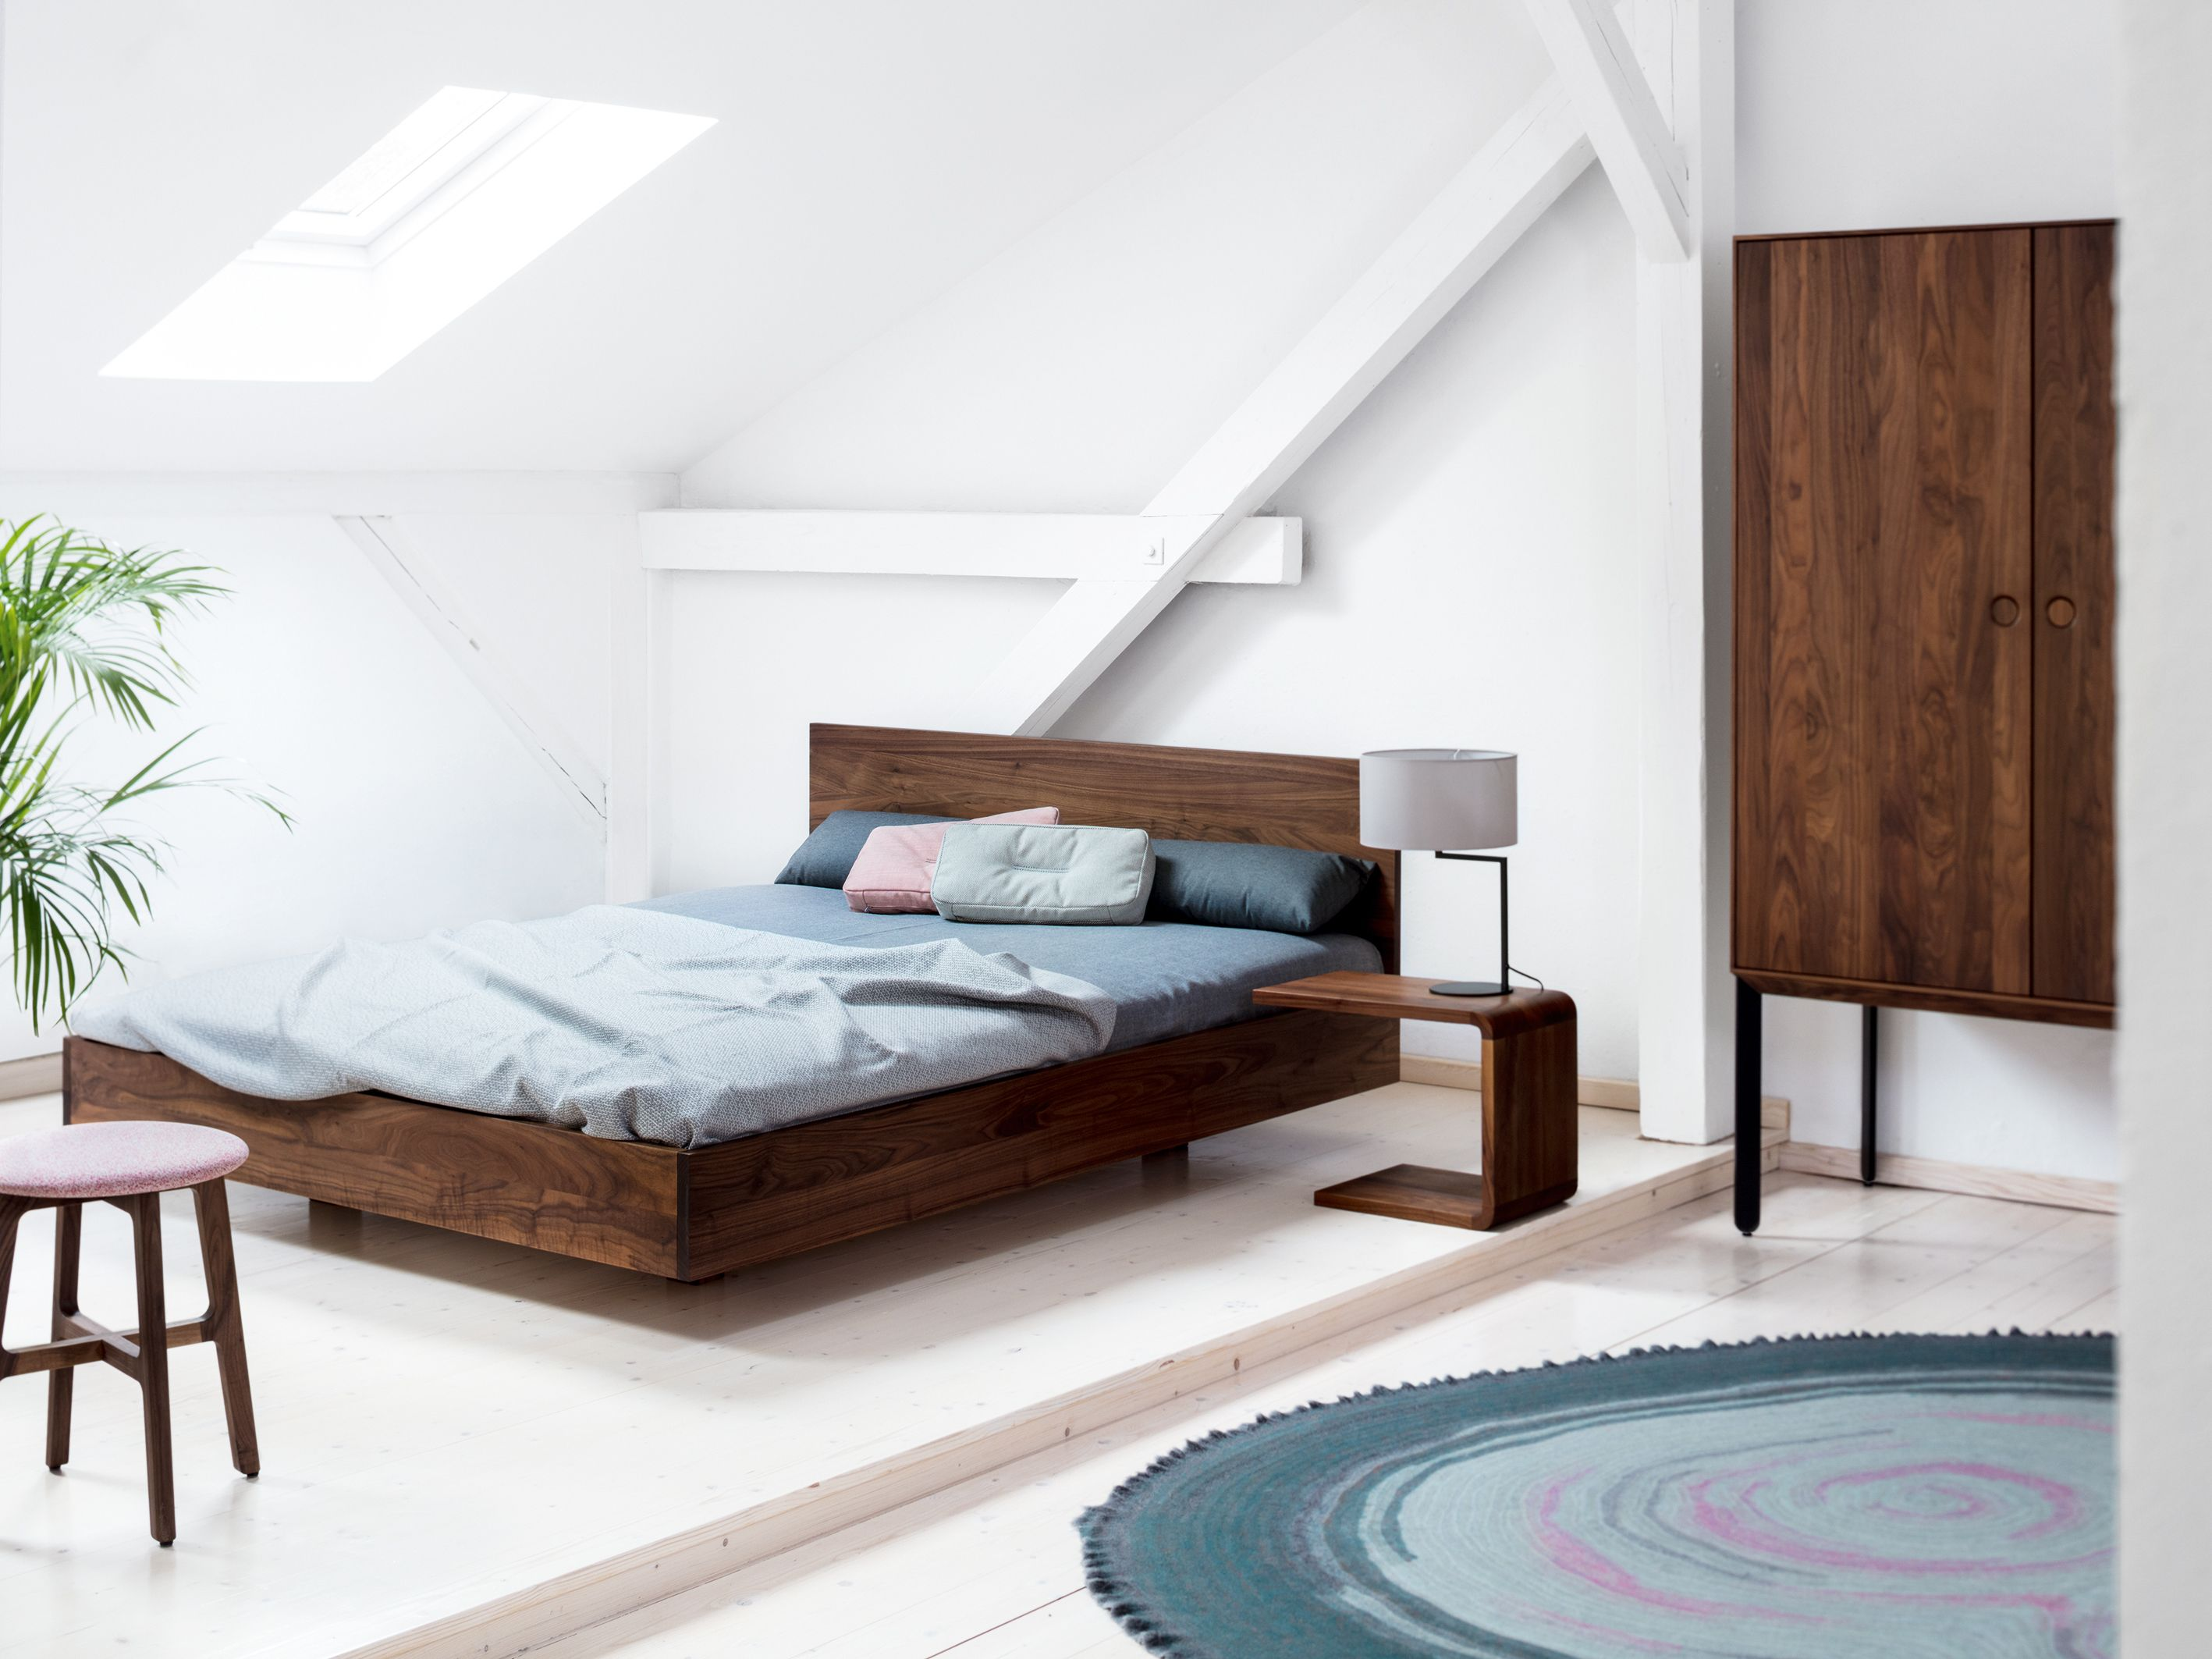 Sleeping room under the roof with SIMPLE HI by Formstelle and KIN